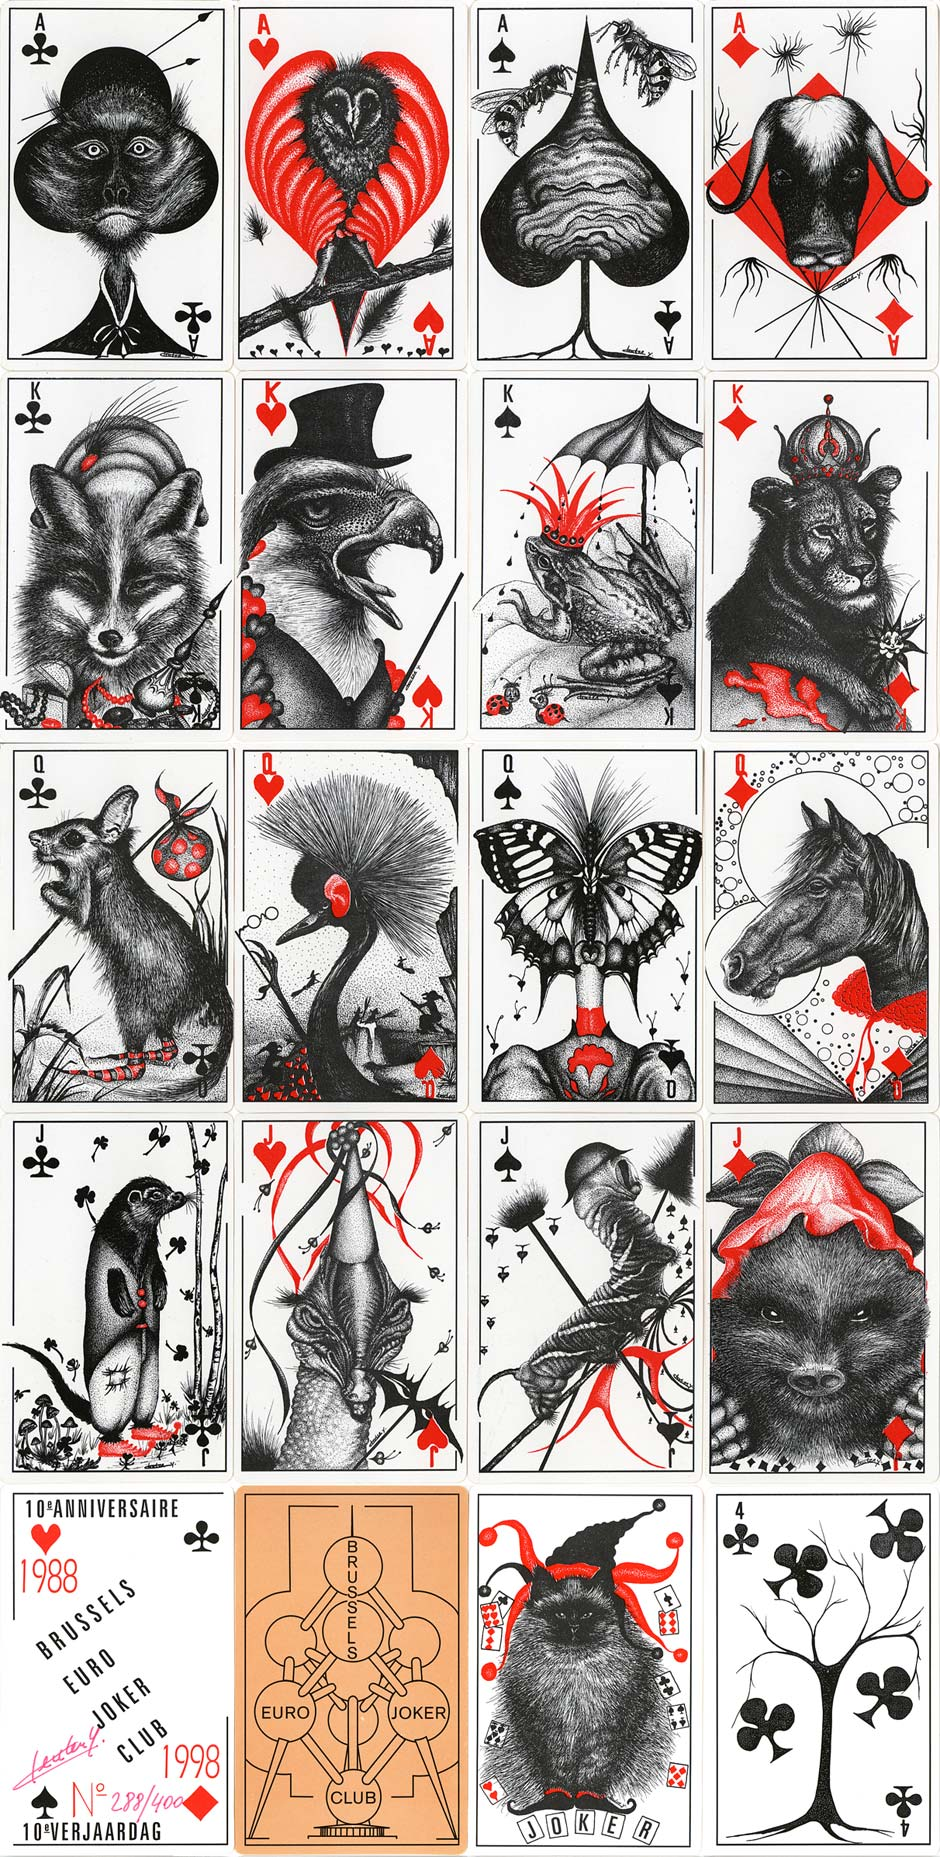 Brussels Euro Joker Club's 10th Anniversary deck with artwork by Yvette Cleuter